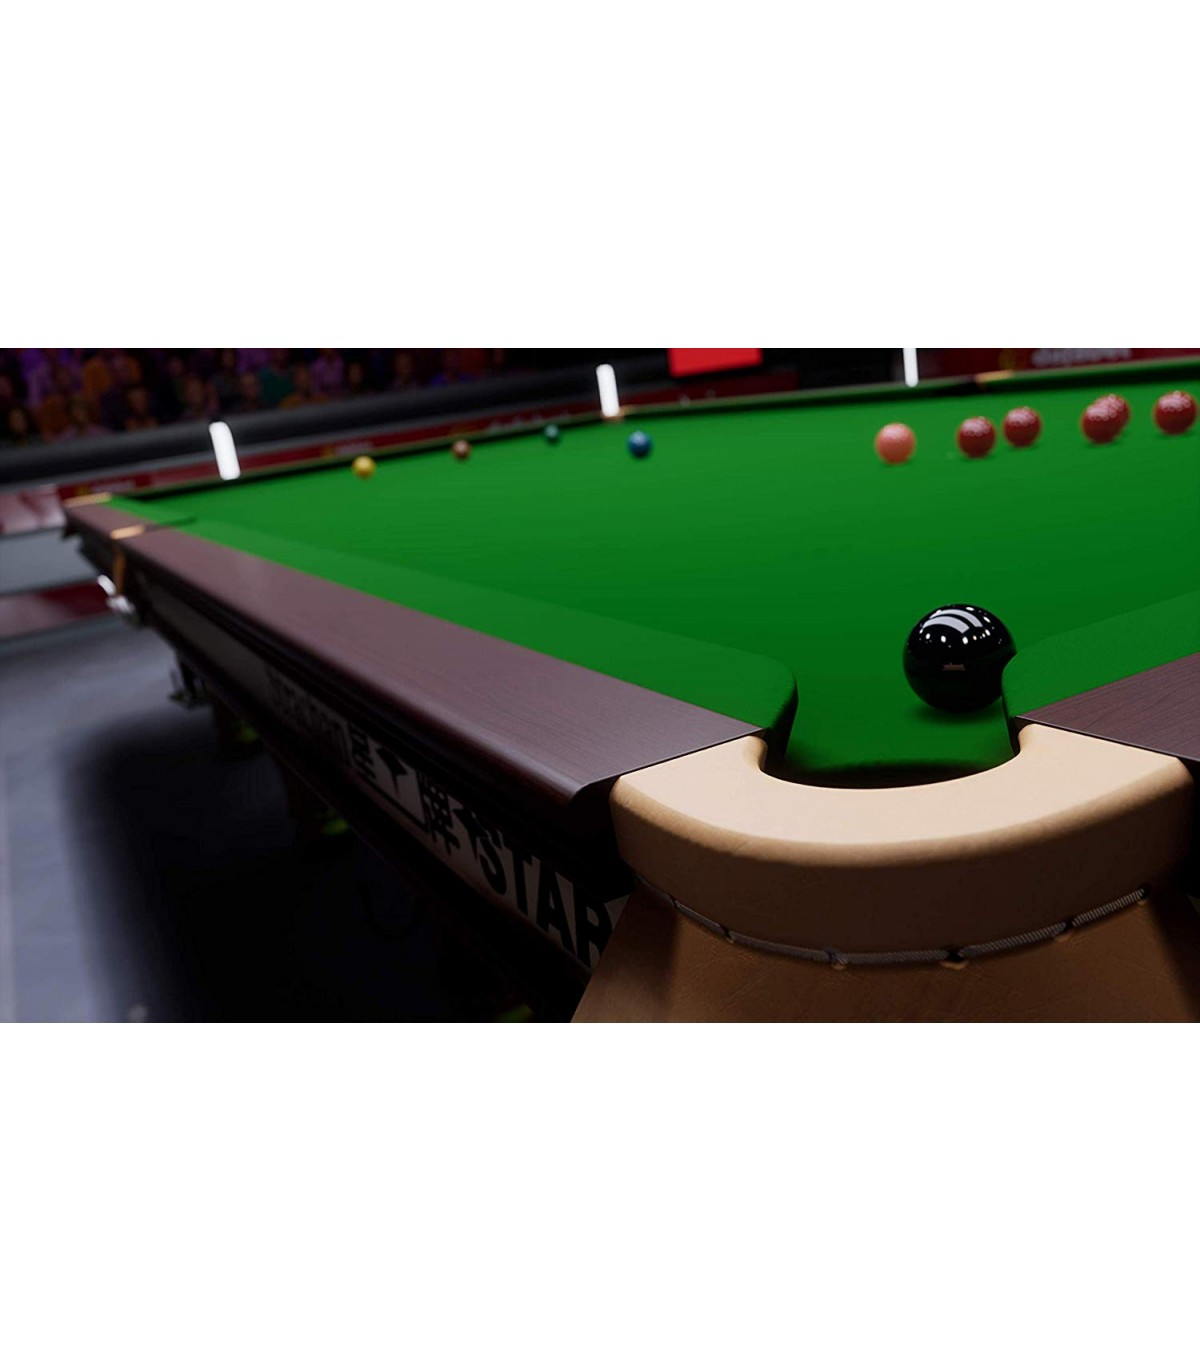 بازی Snooker 19 The Official Video Game - پلی استیشن 4